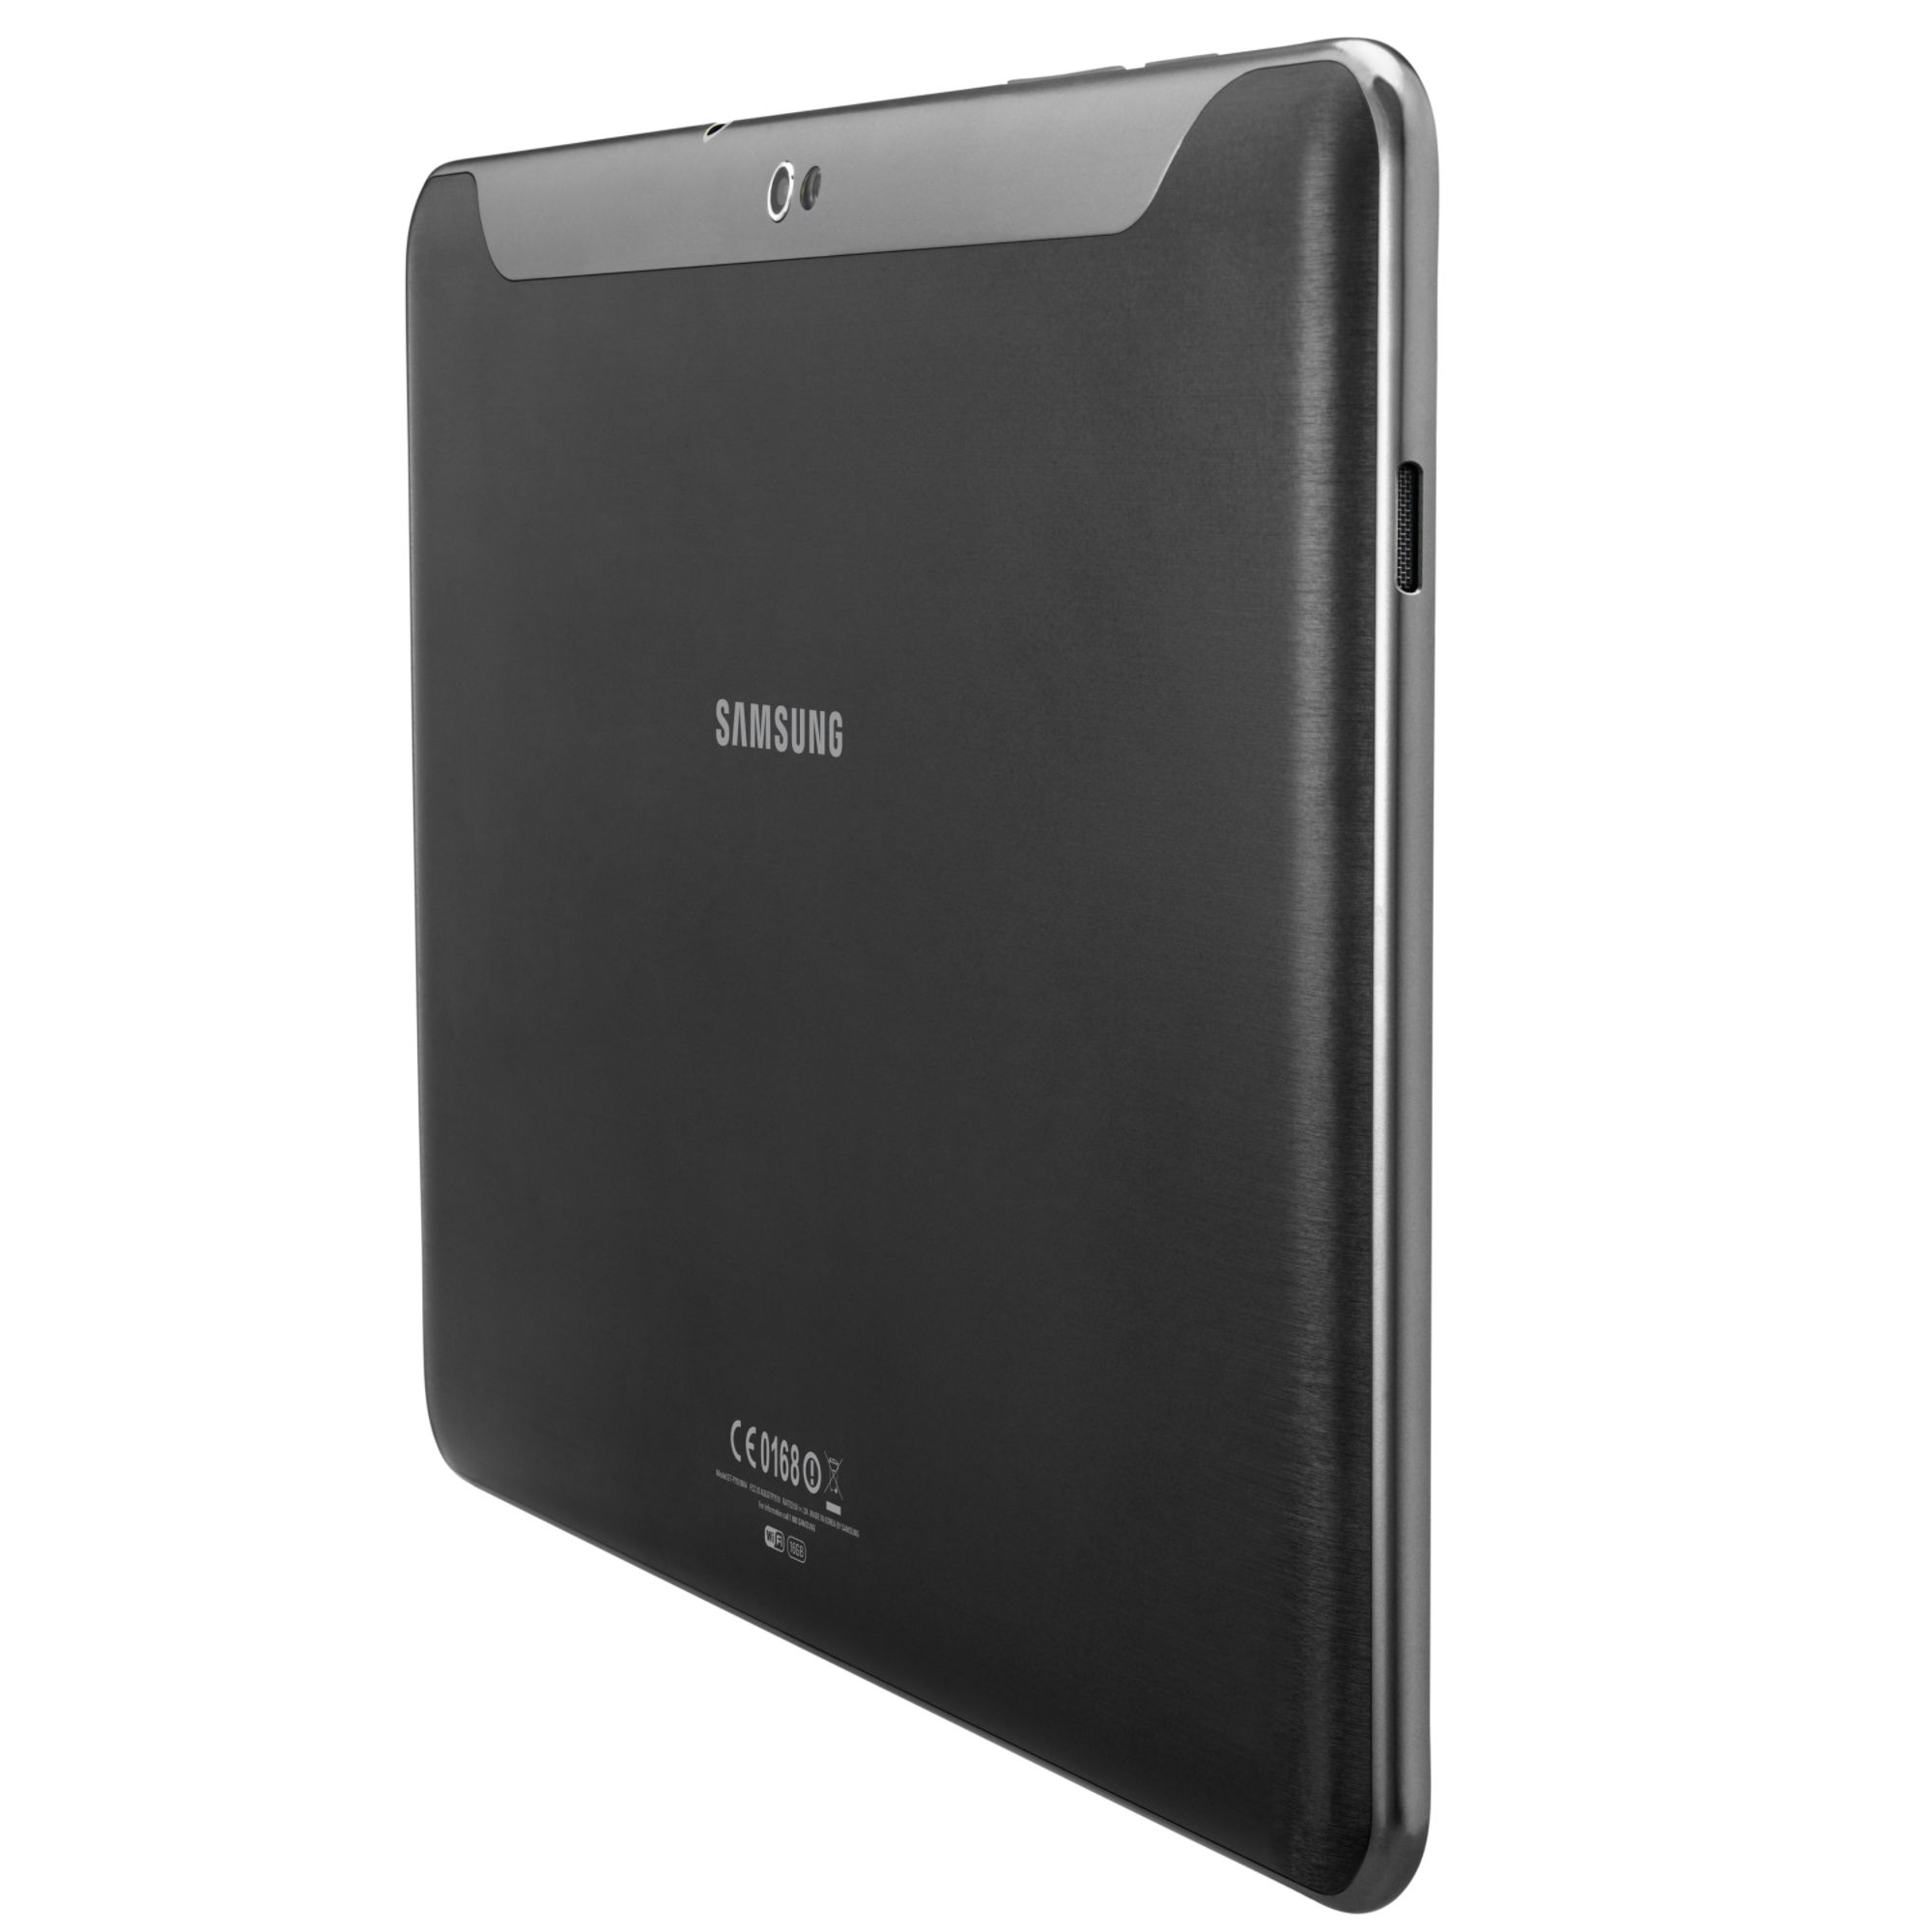 "Samsung Galaxy Tab 10.1"" with Wi-Fi™ - Metallic Gray/Black Back"